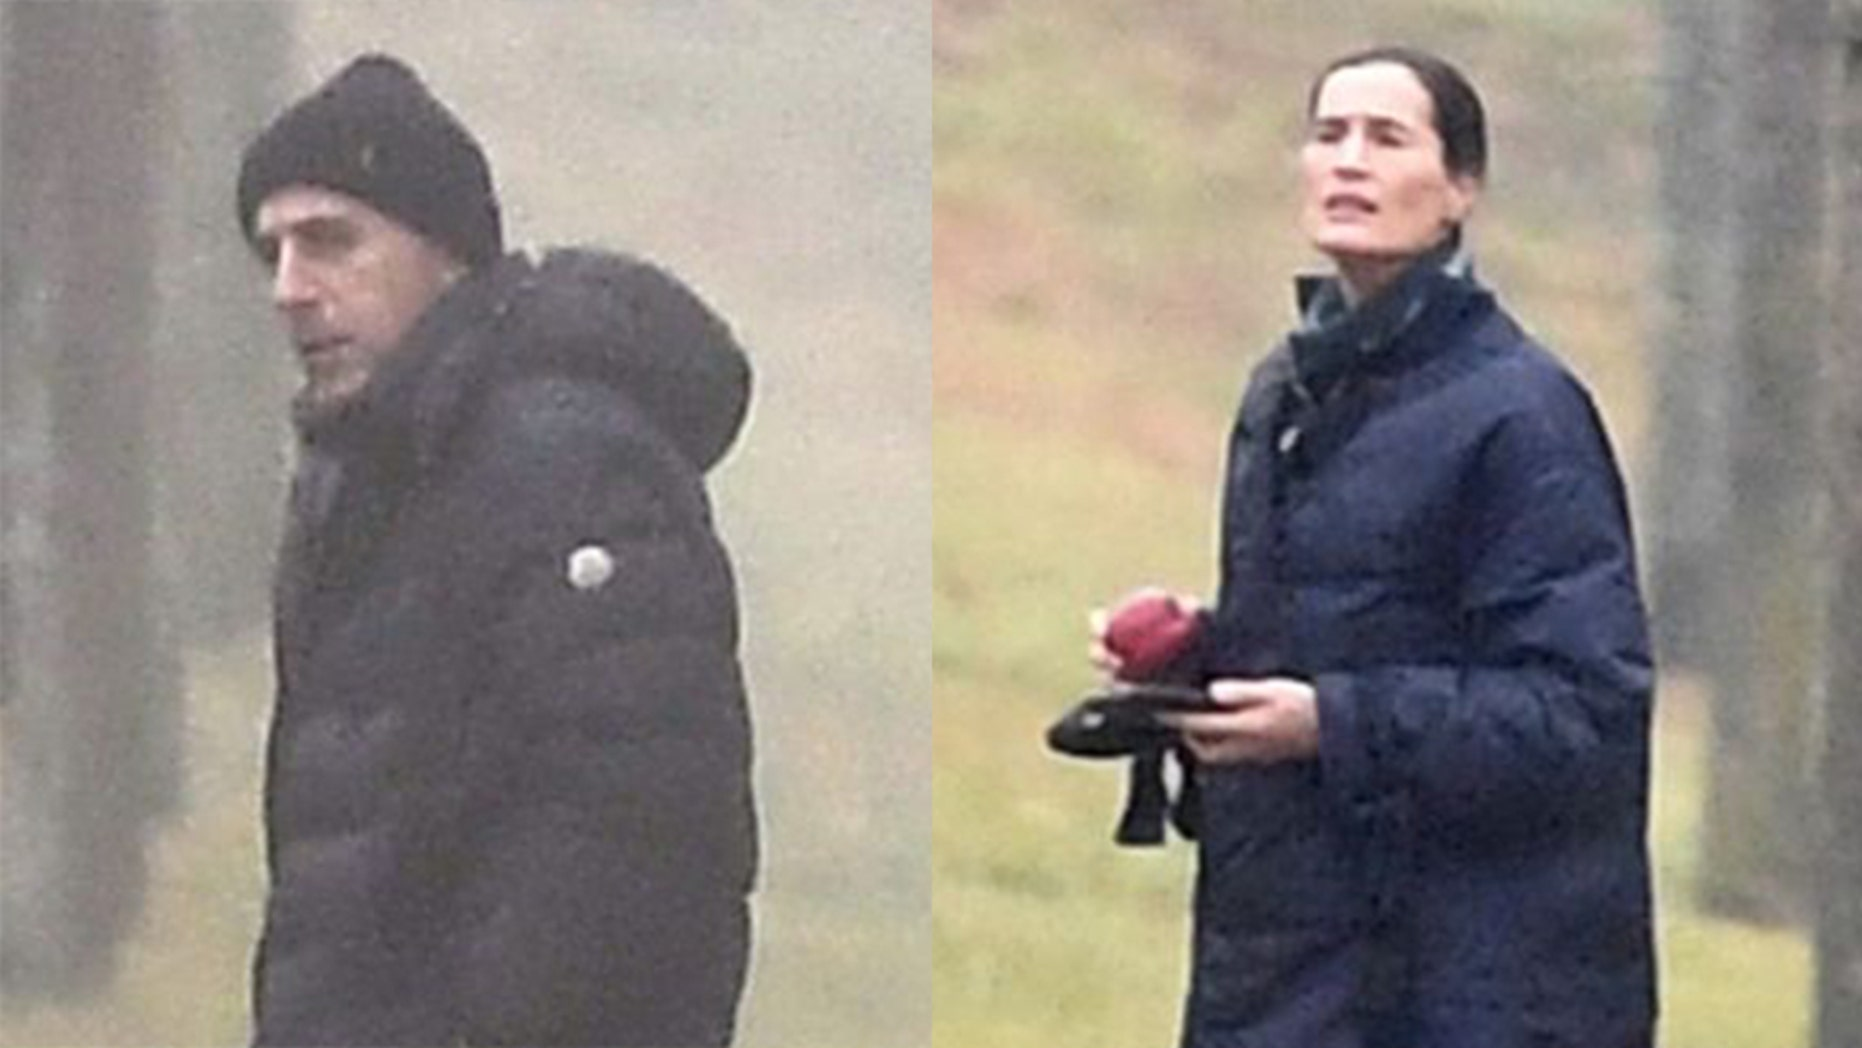 Matt Lauer and his estranged wife were spotted at their private and lavish horse farm.